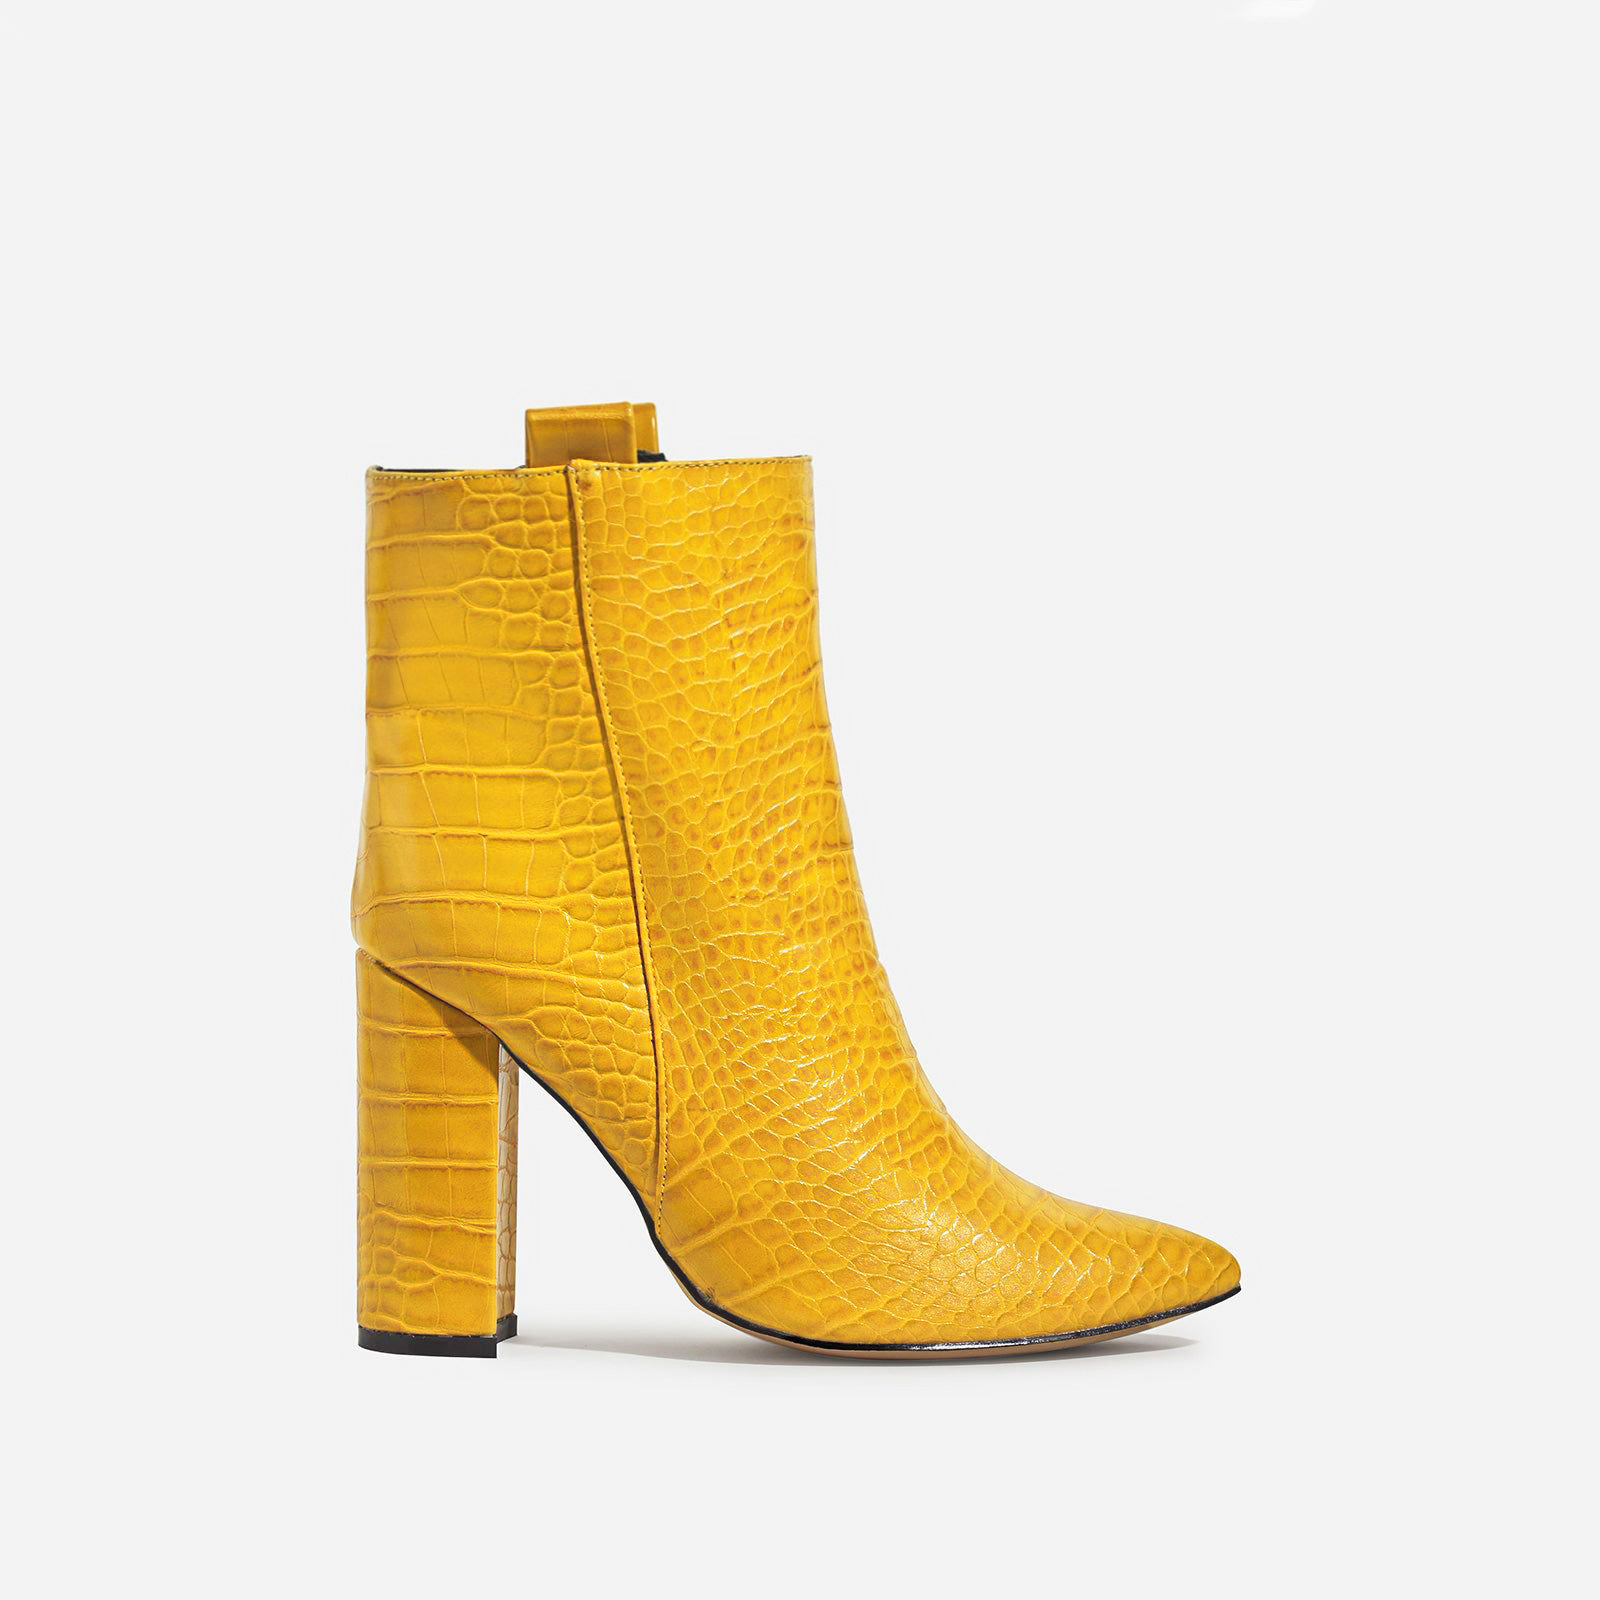 Monterey Block Heel Ankle Boot In Yellow Croc Print Faux Leather